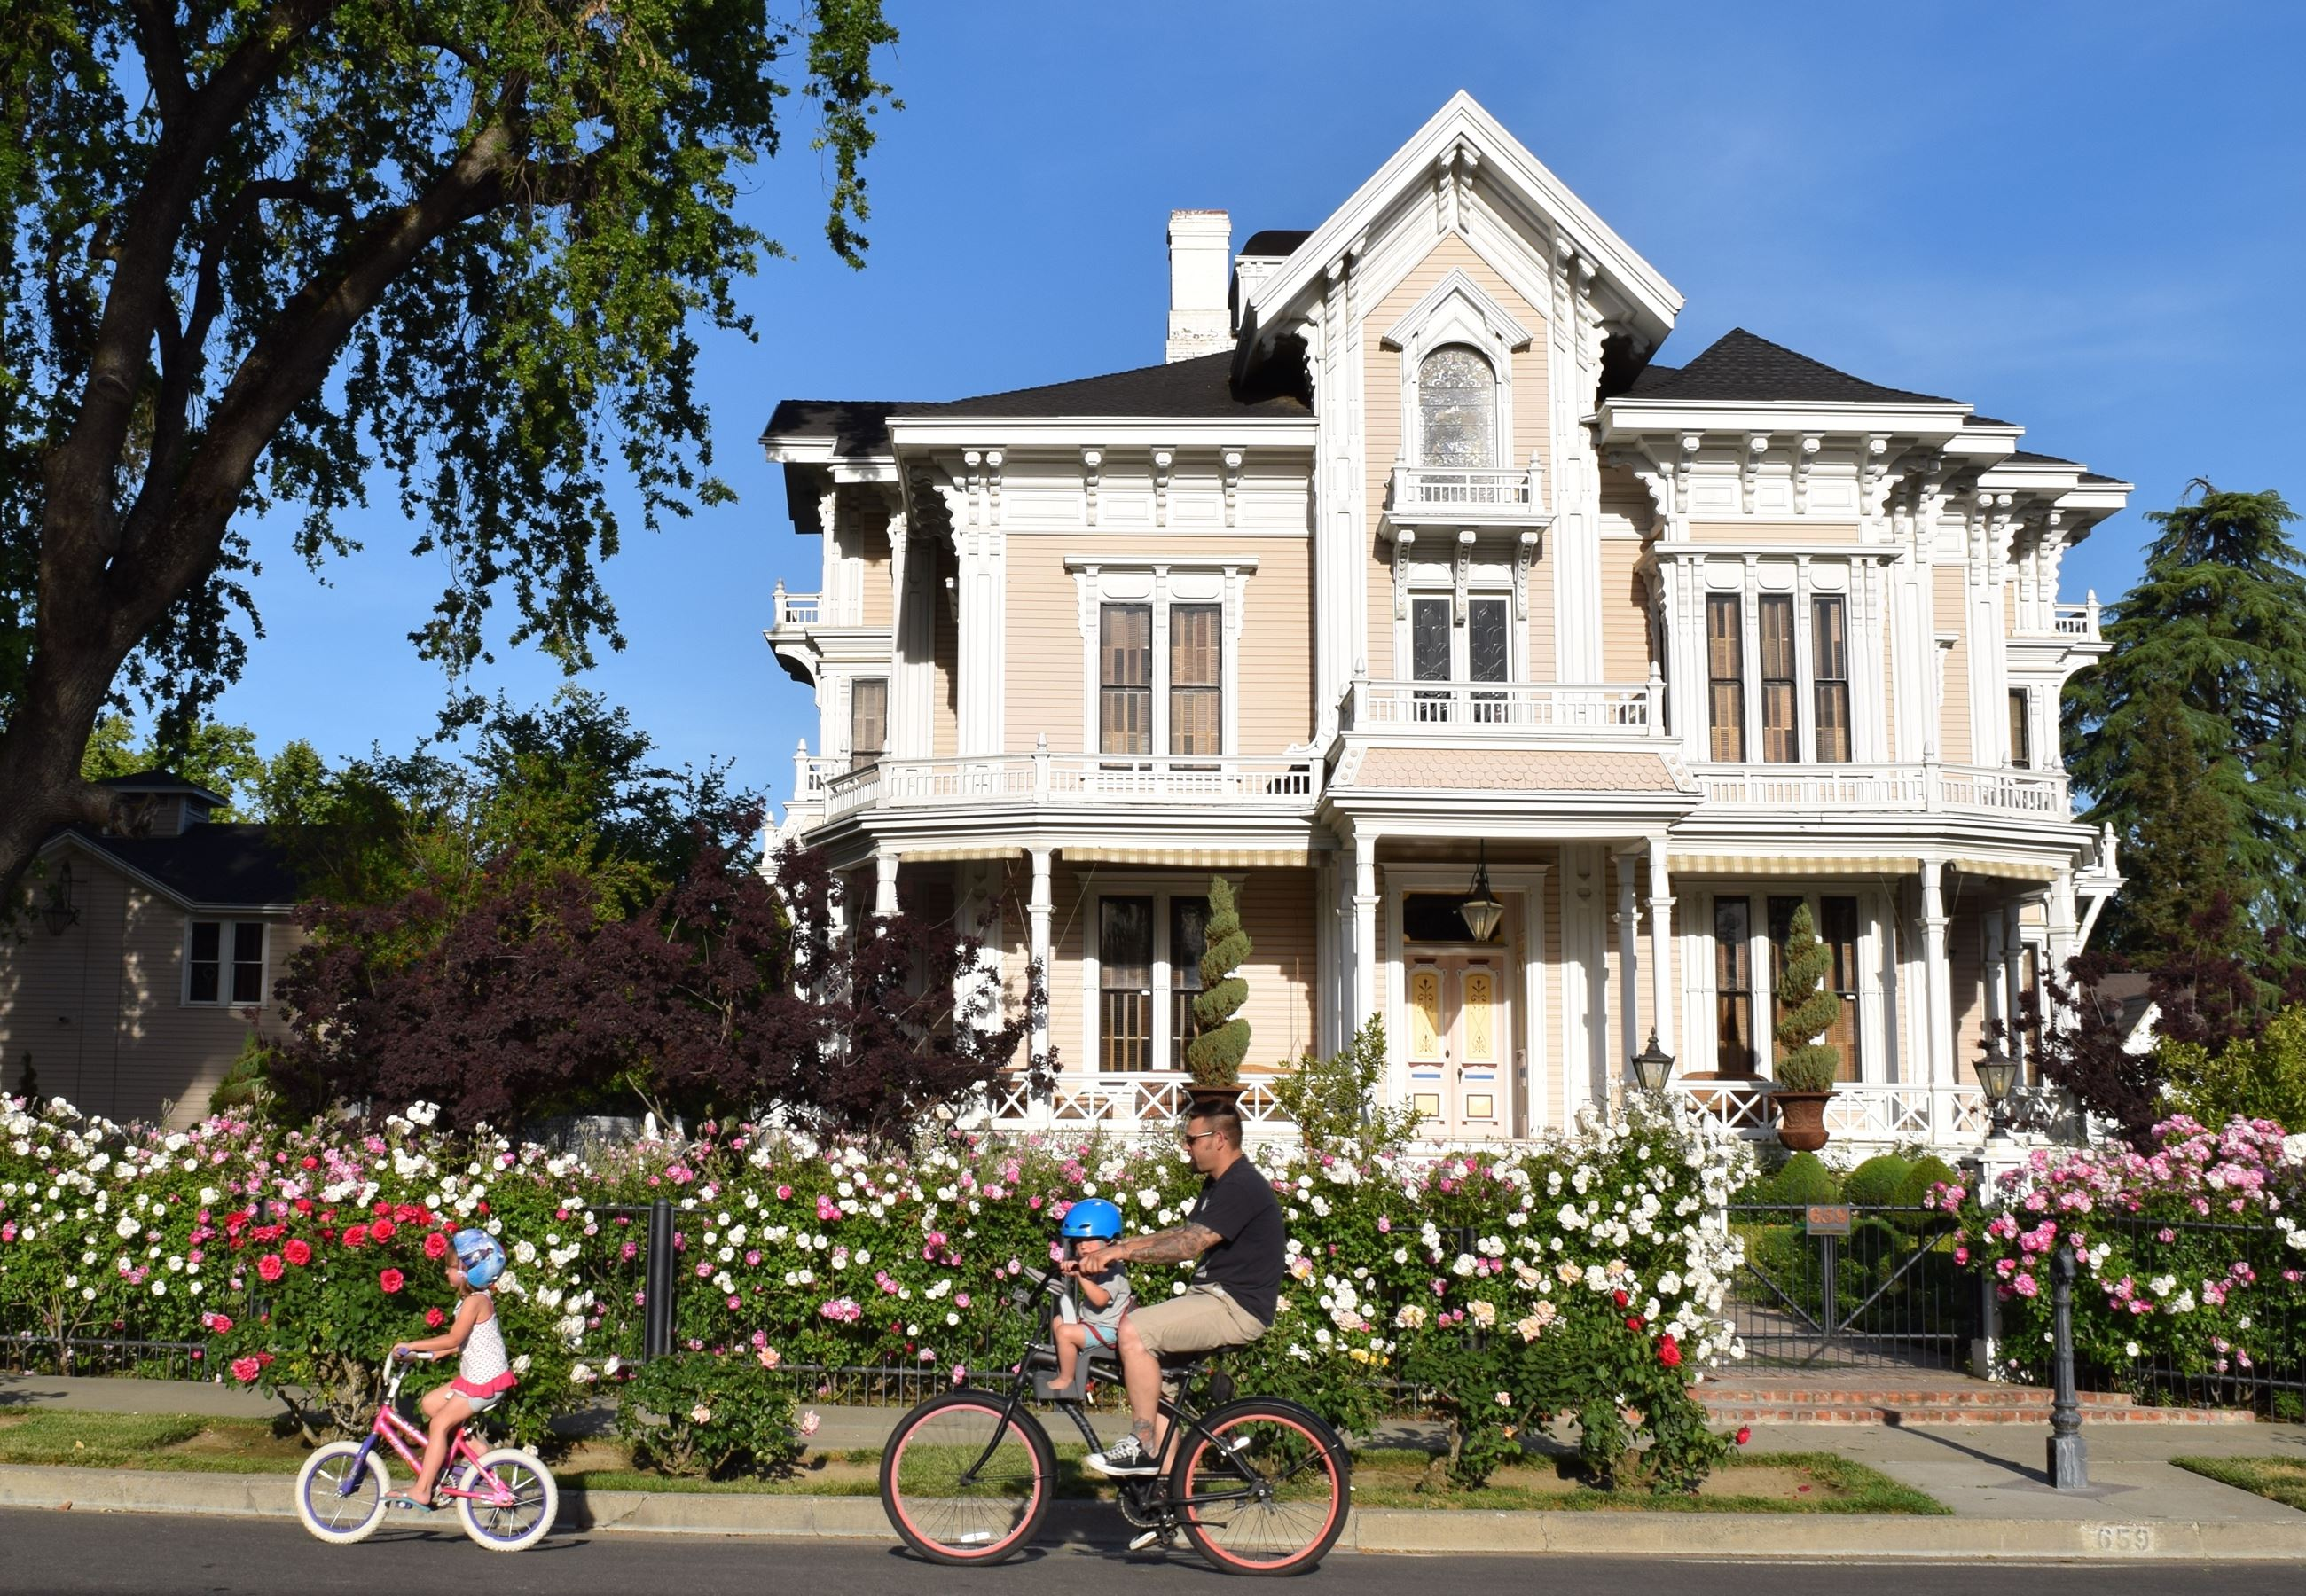 Family Biking in Front of Gable Mansion